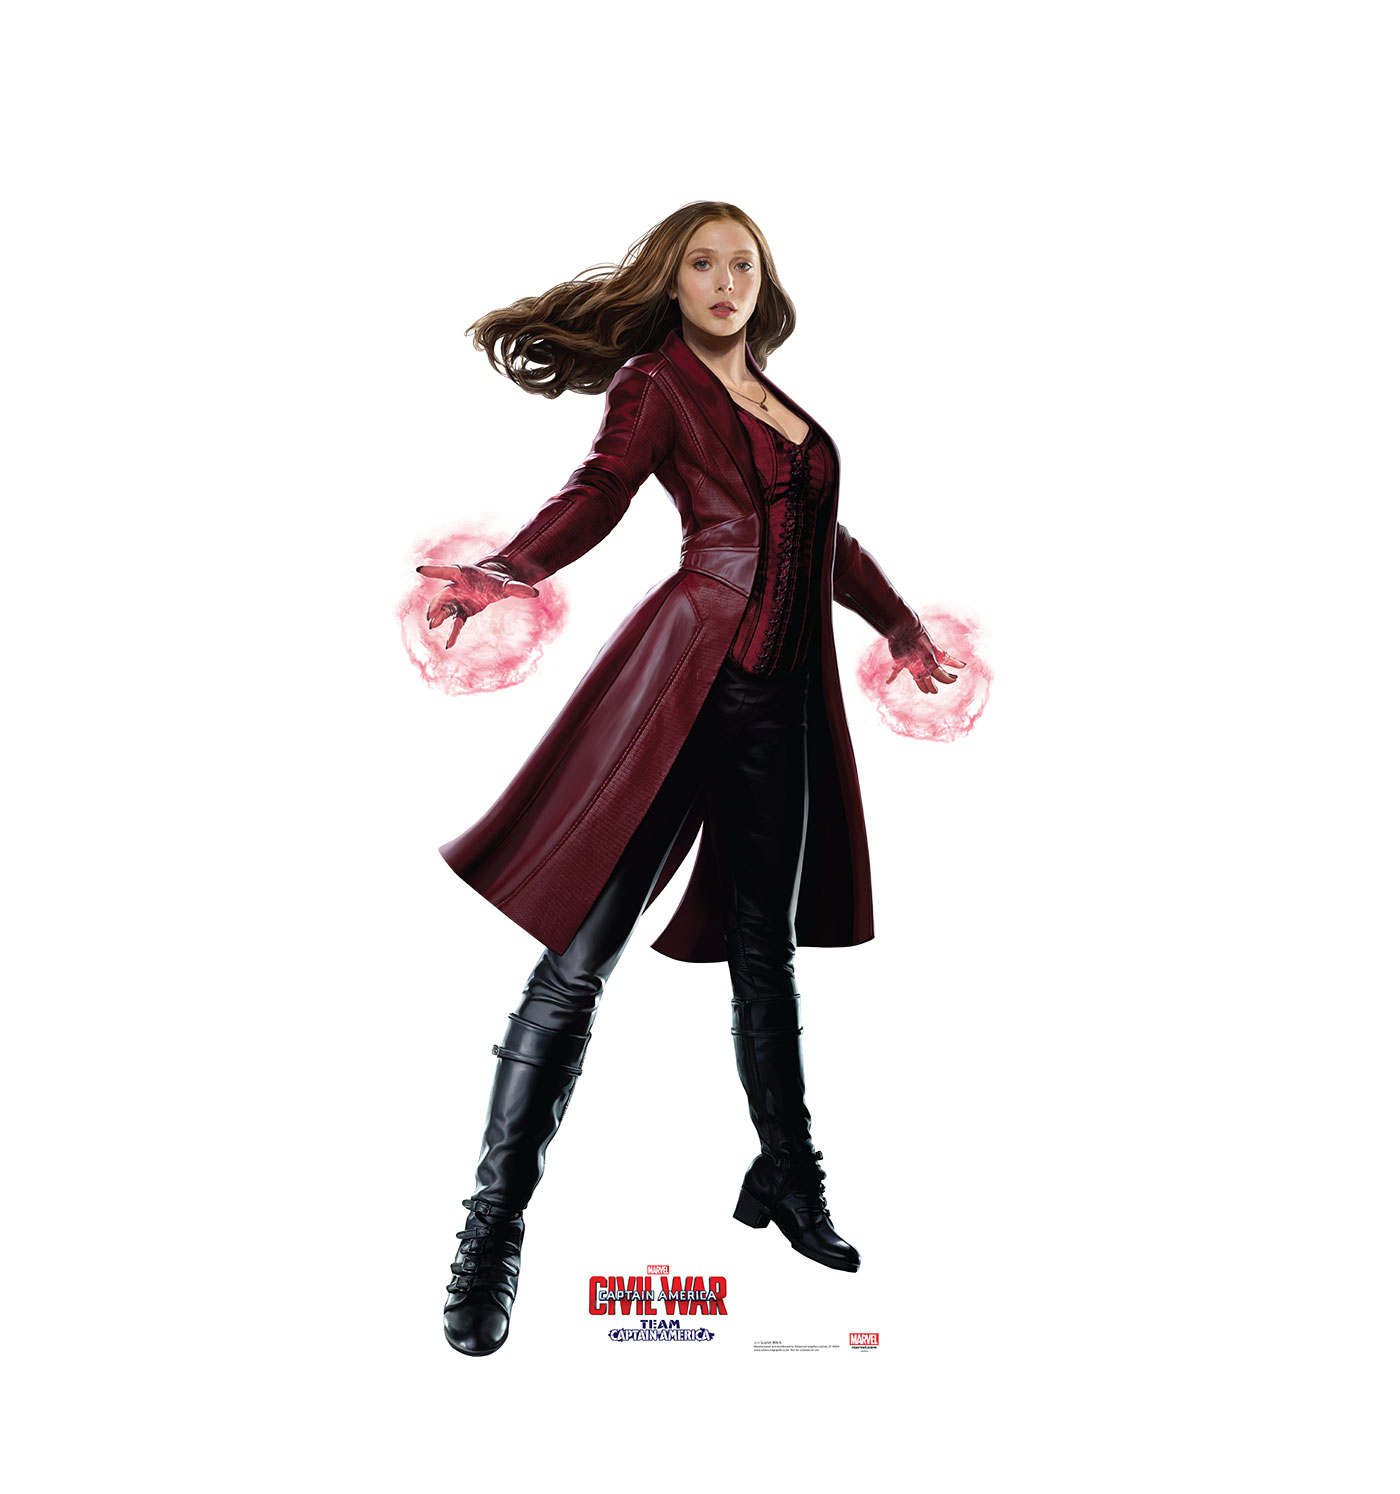 captain-america-civil-war-artwork-scarlett-witch